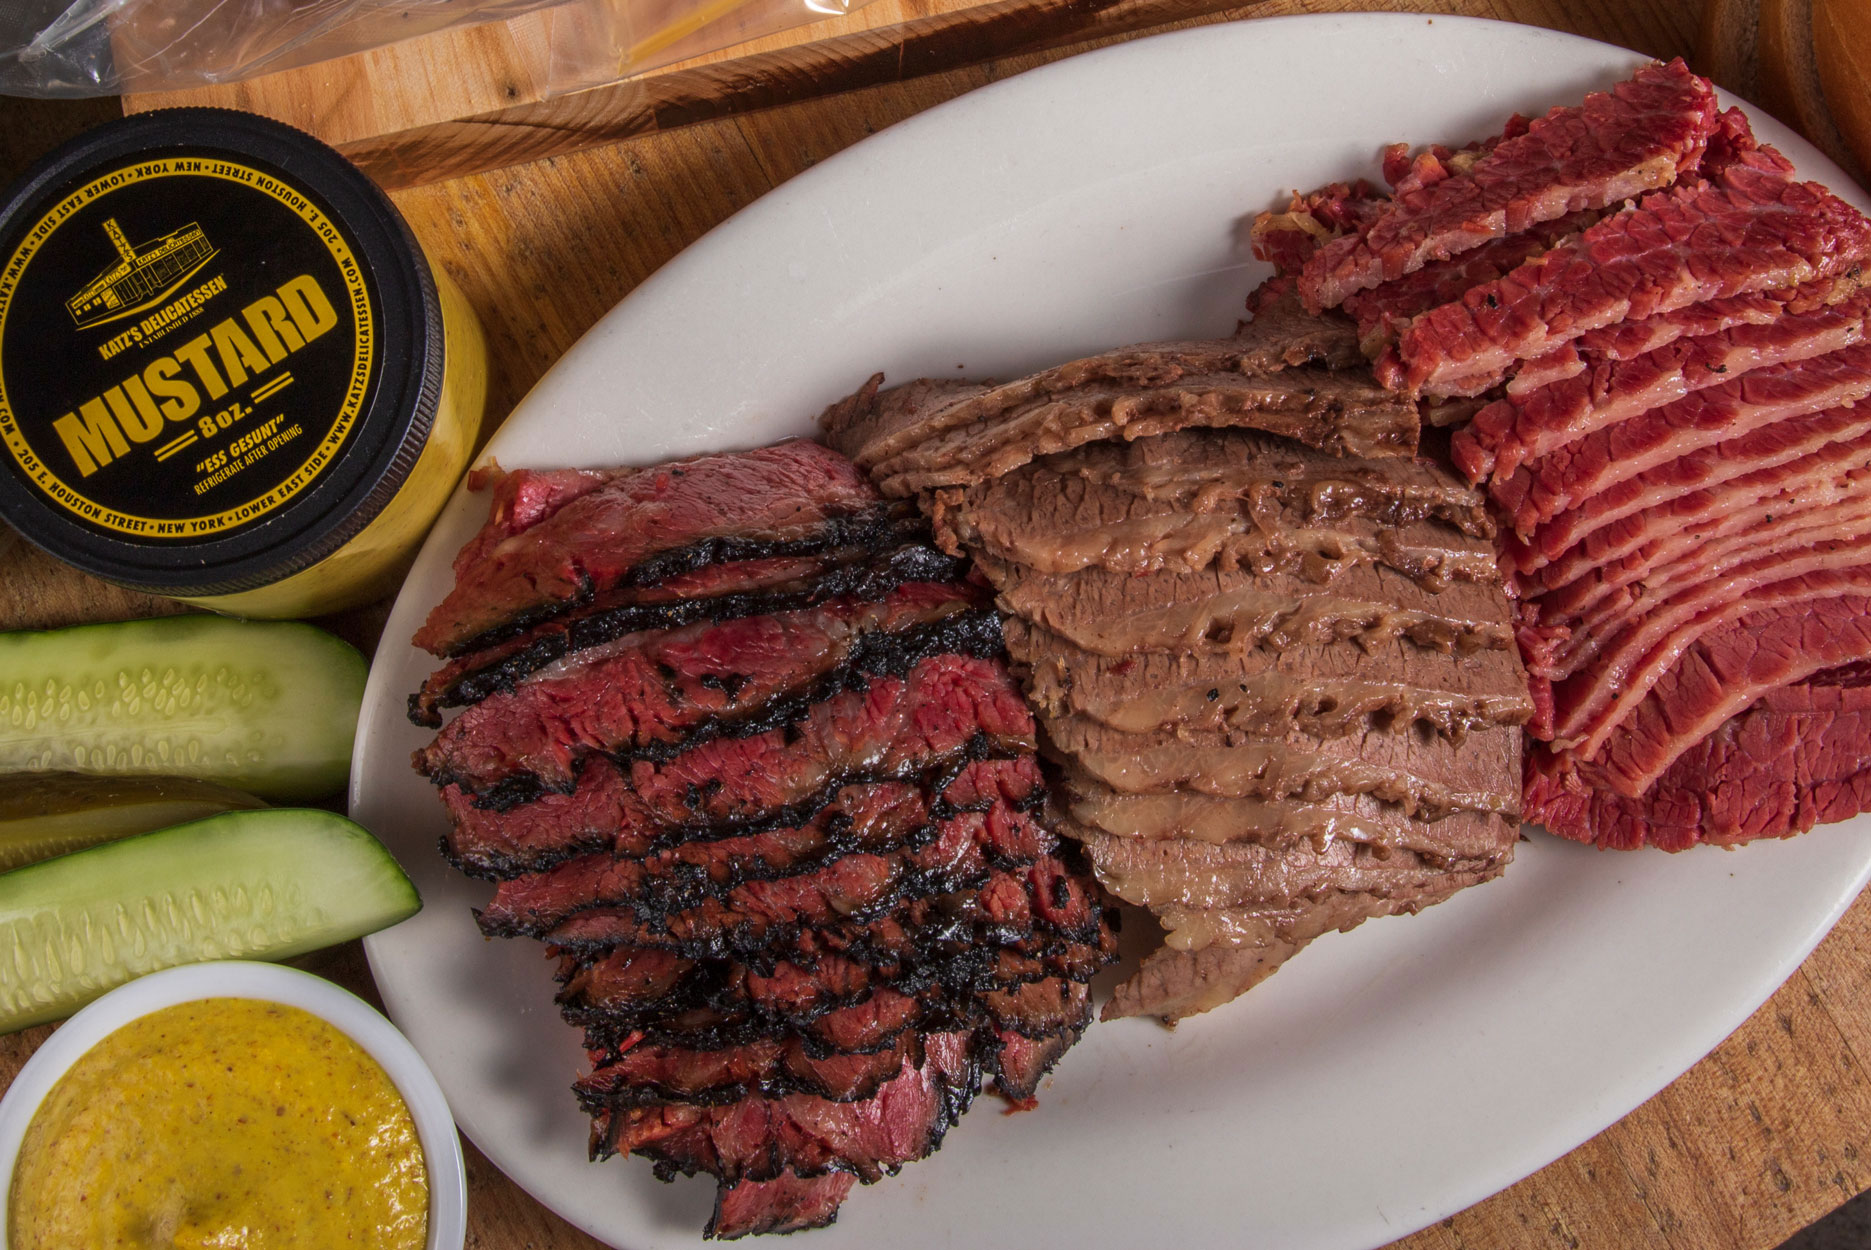 You Can Order Katz's Deli for a Father's Day Treat